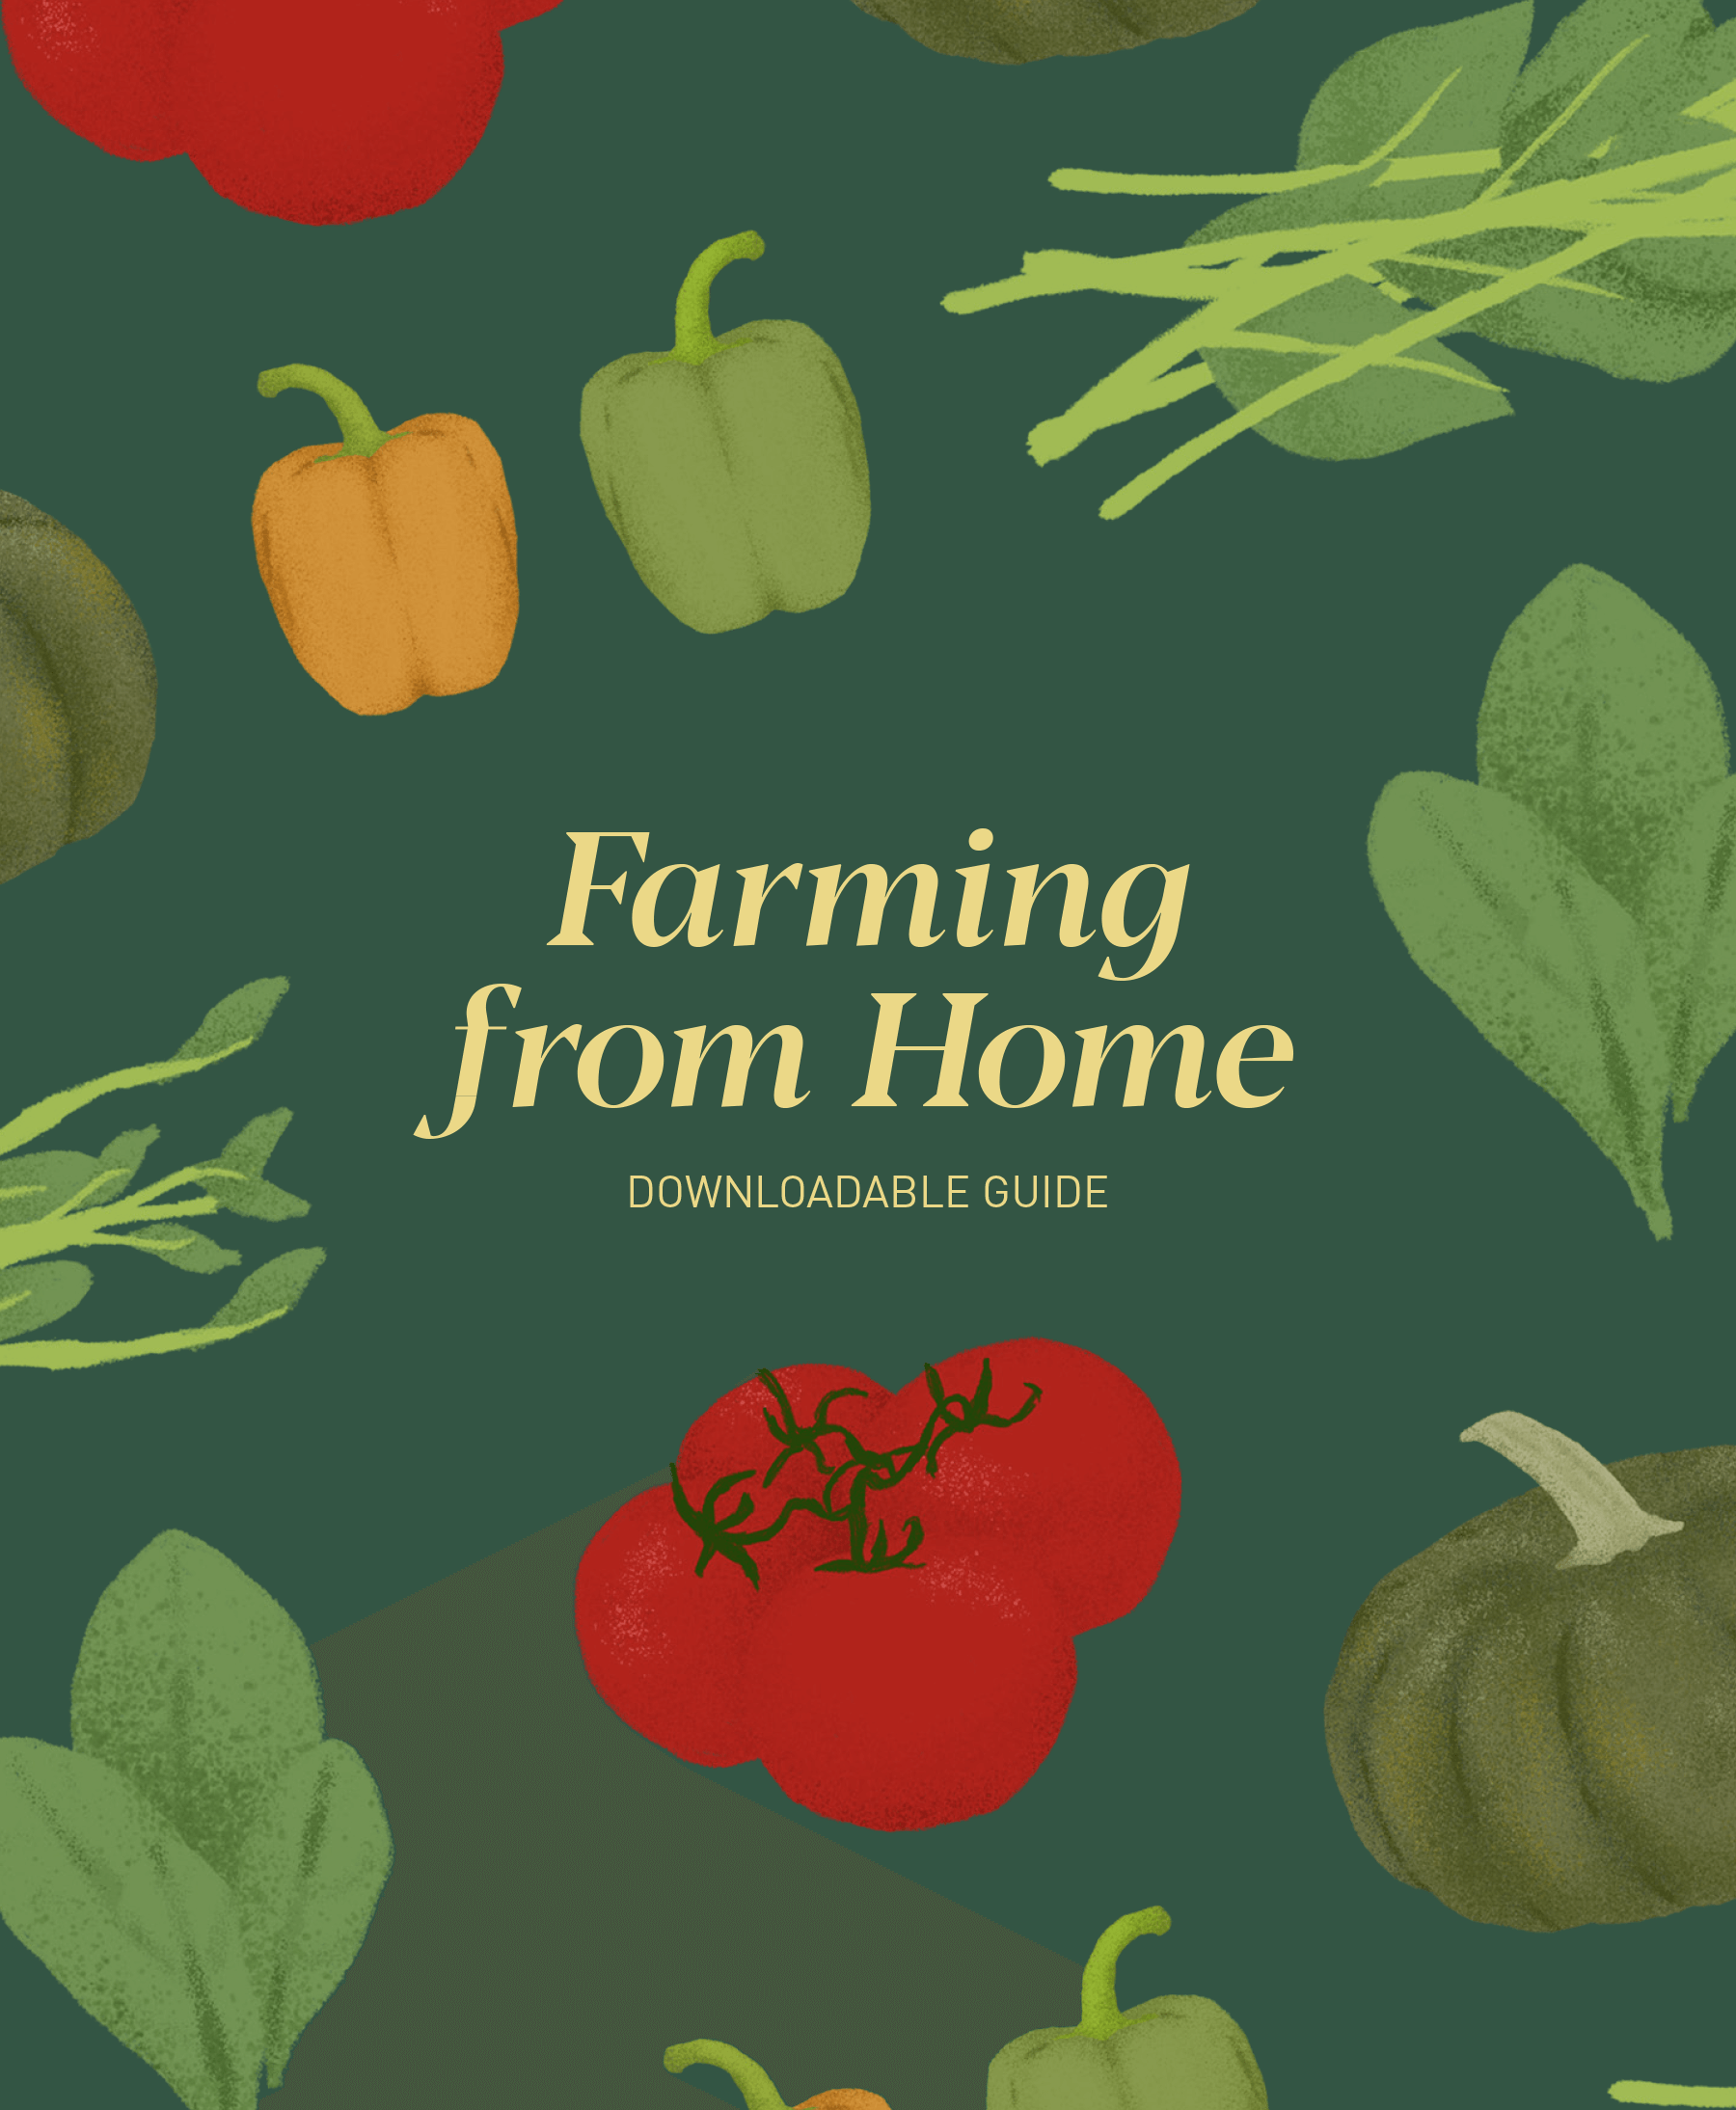 How to Farm at Home - Downloadable Guide